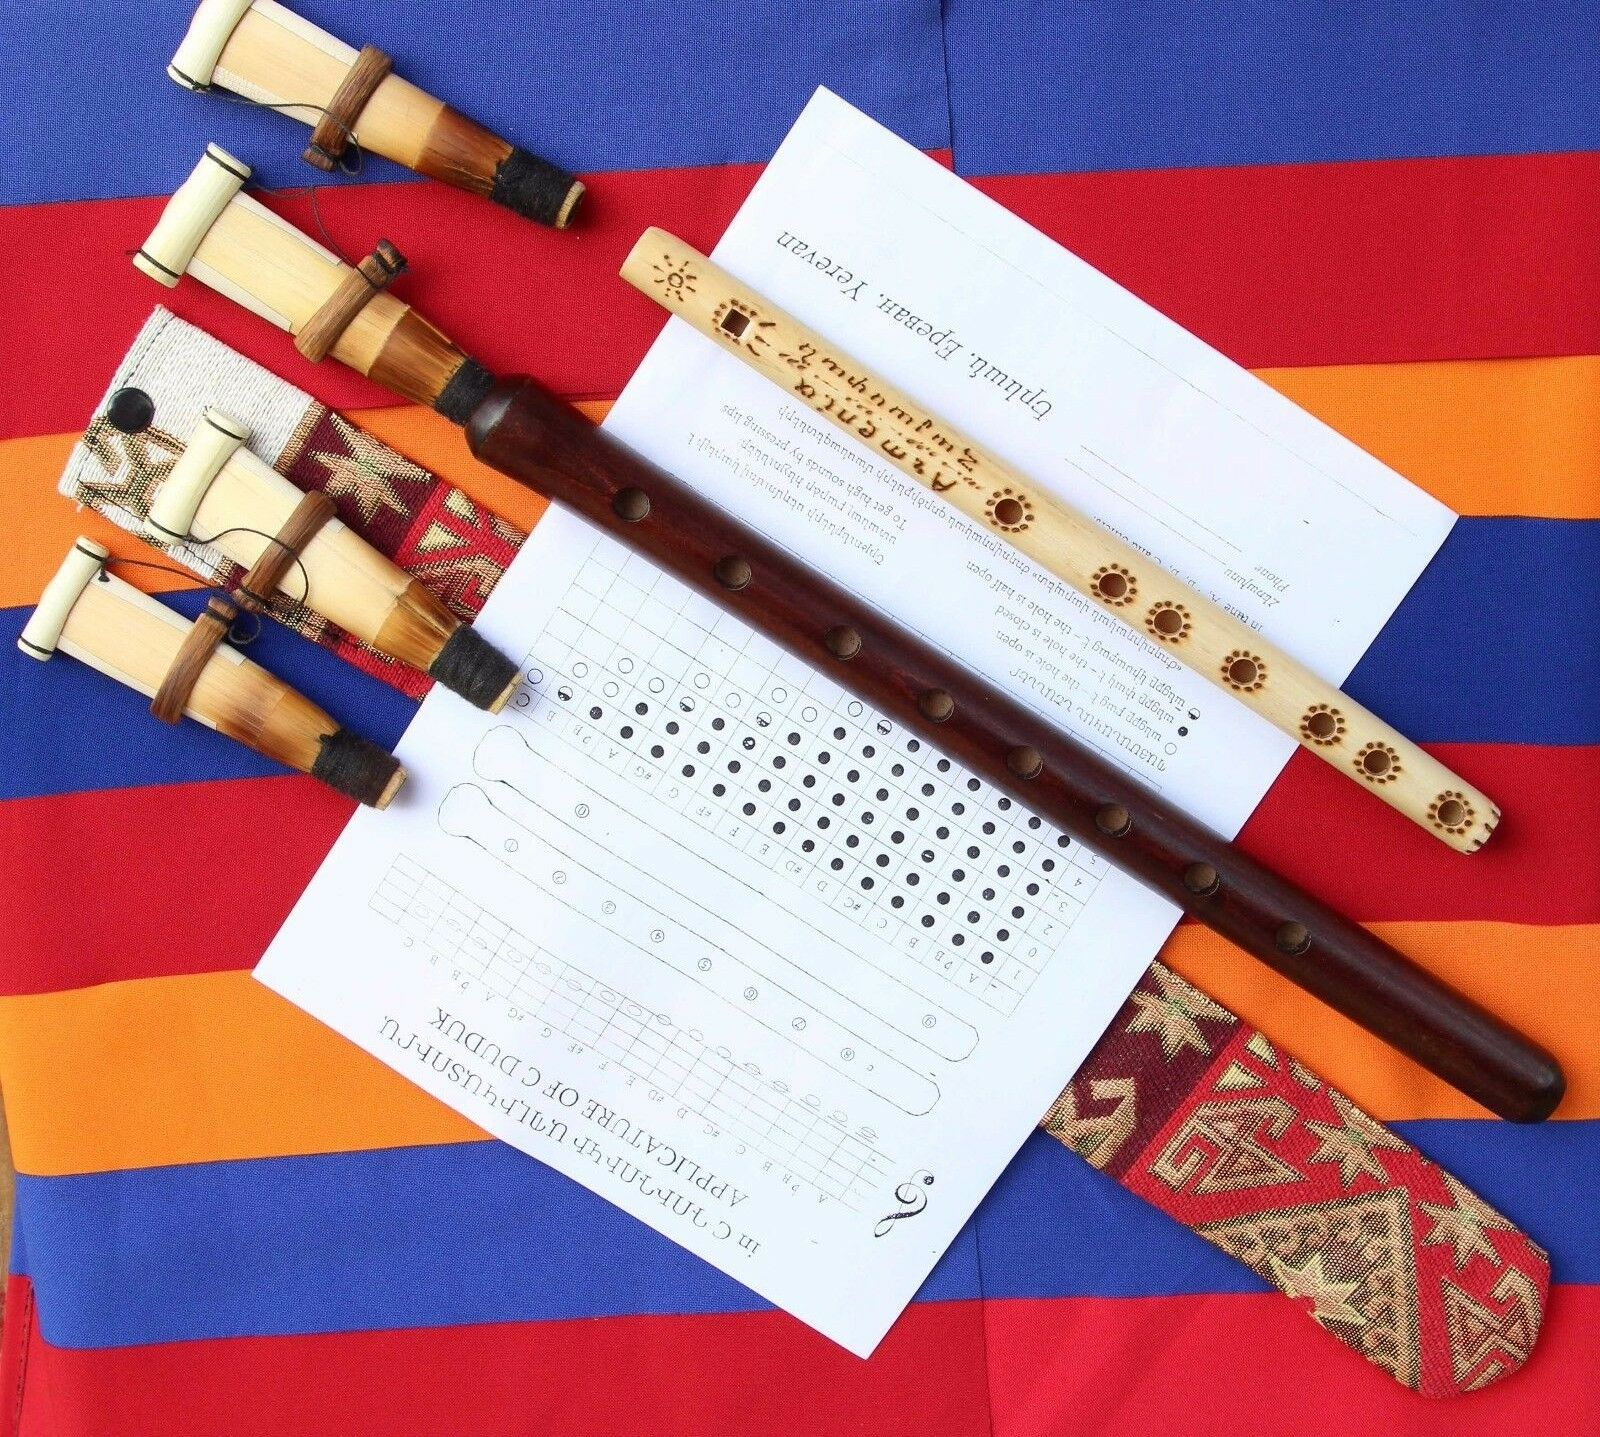 ARMENIAN DUDUK+4reeds+case, NEW FROM ARMENIA, Hand made APRICOT WOOD 100%+instr